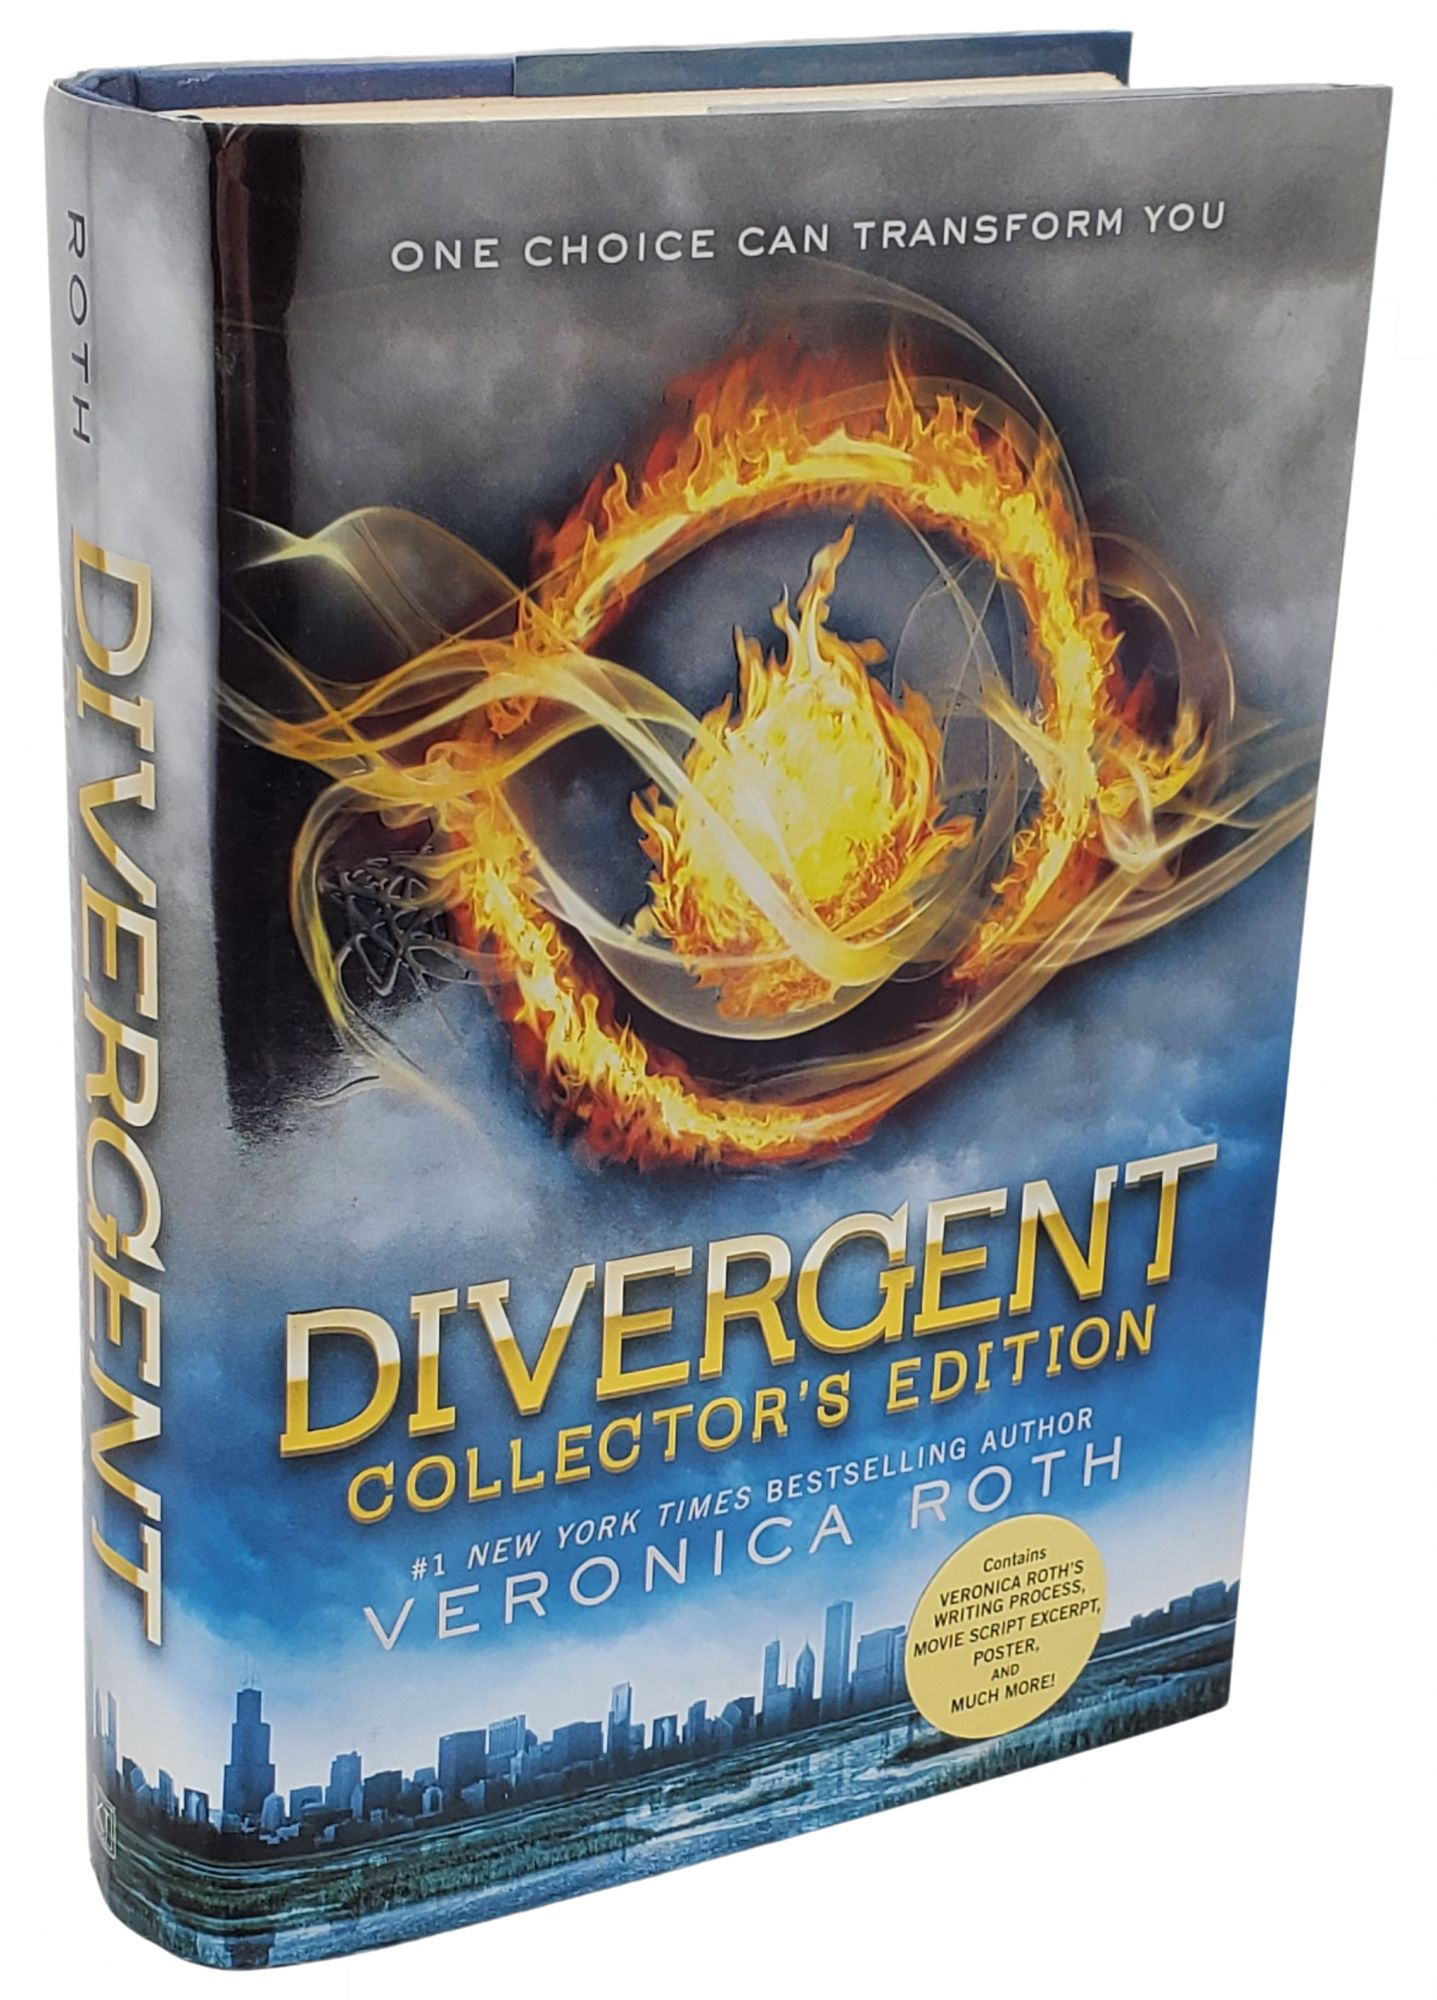 DIVERGENT: COLLECTOR'S EDITION. Veronica Roth.